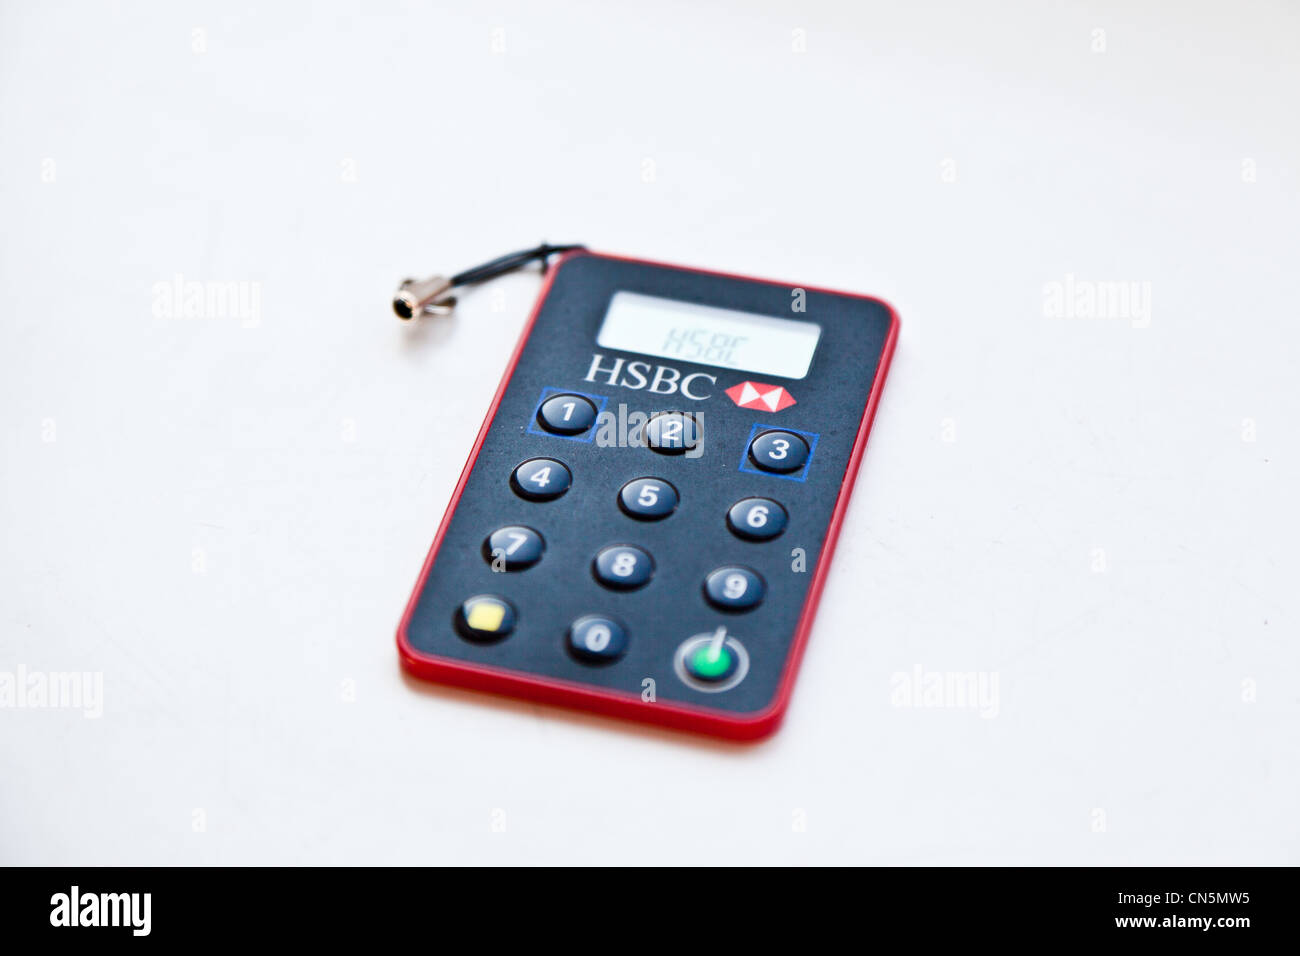 The new key code generator from HSBC bank which is now